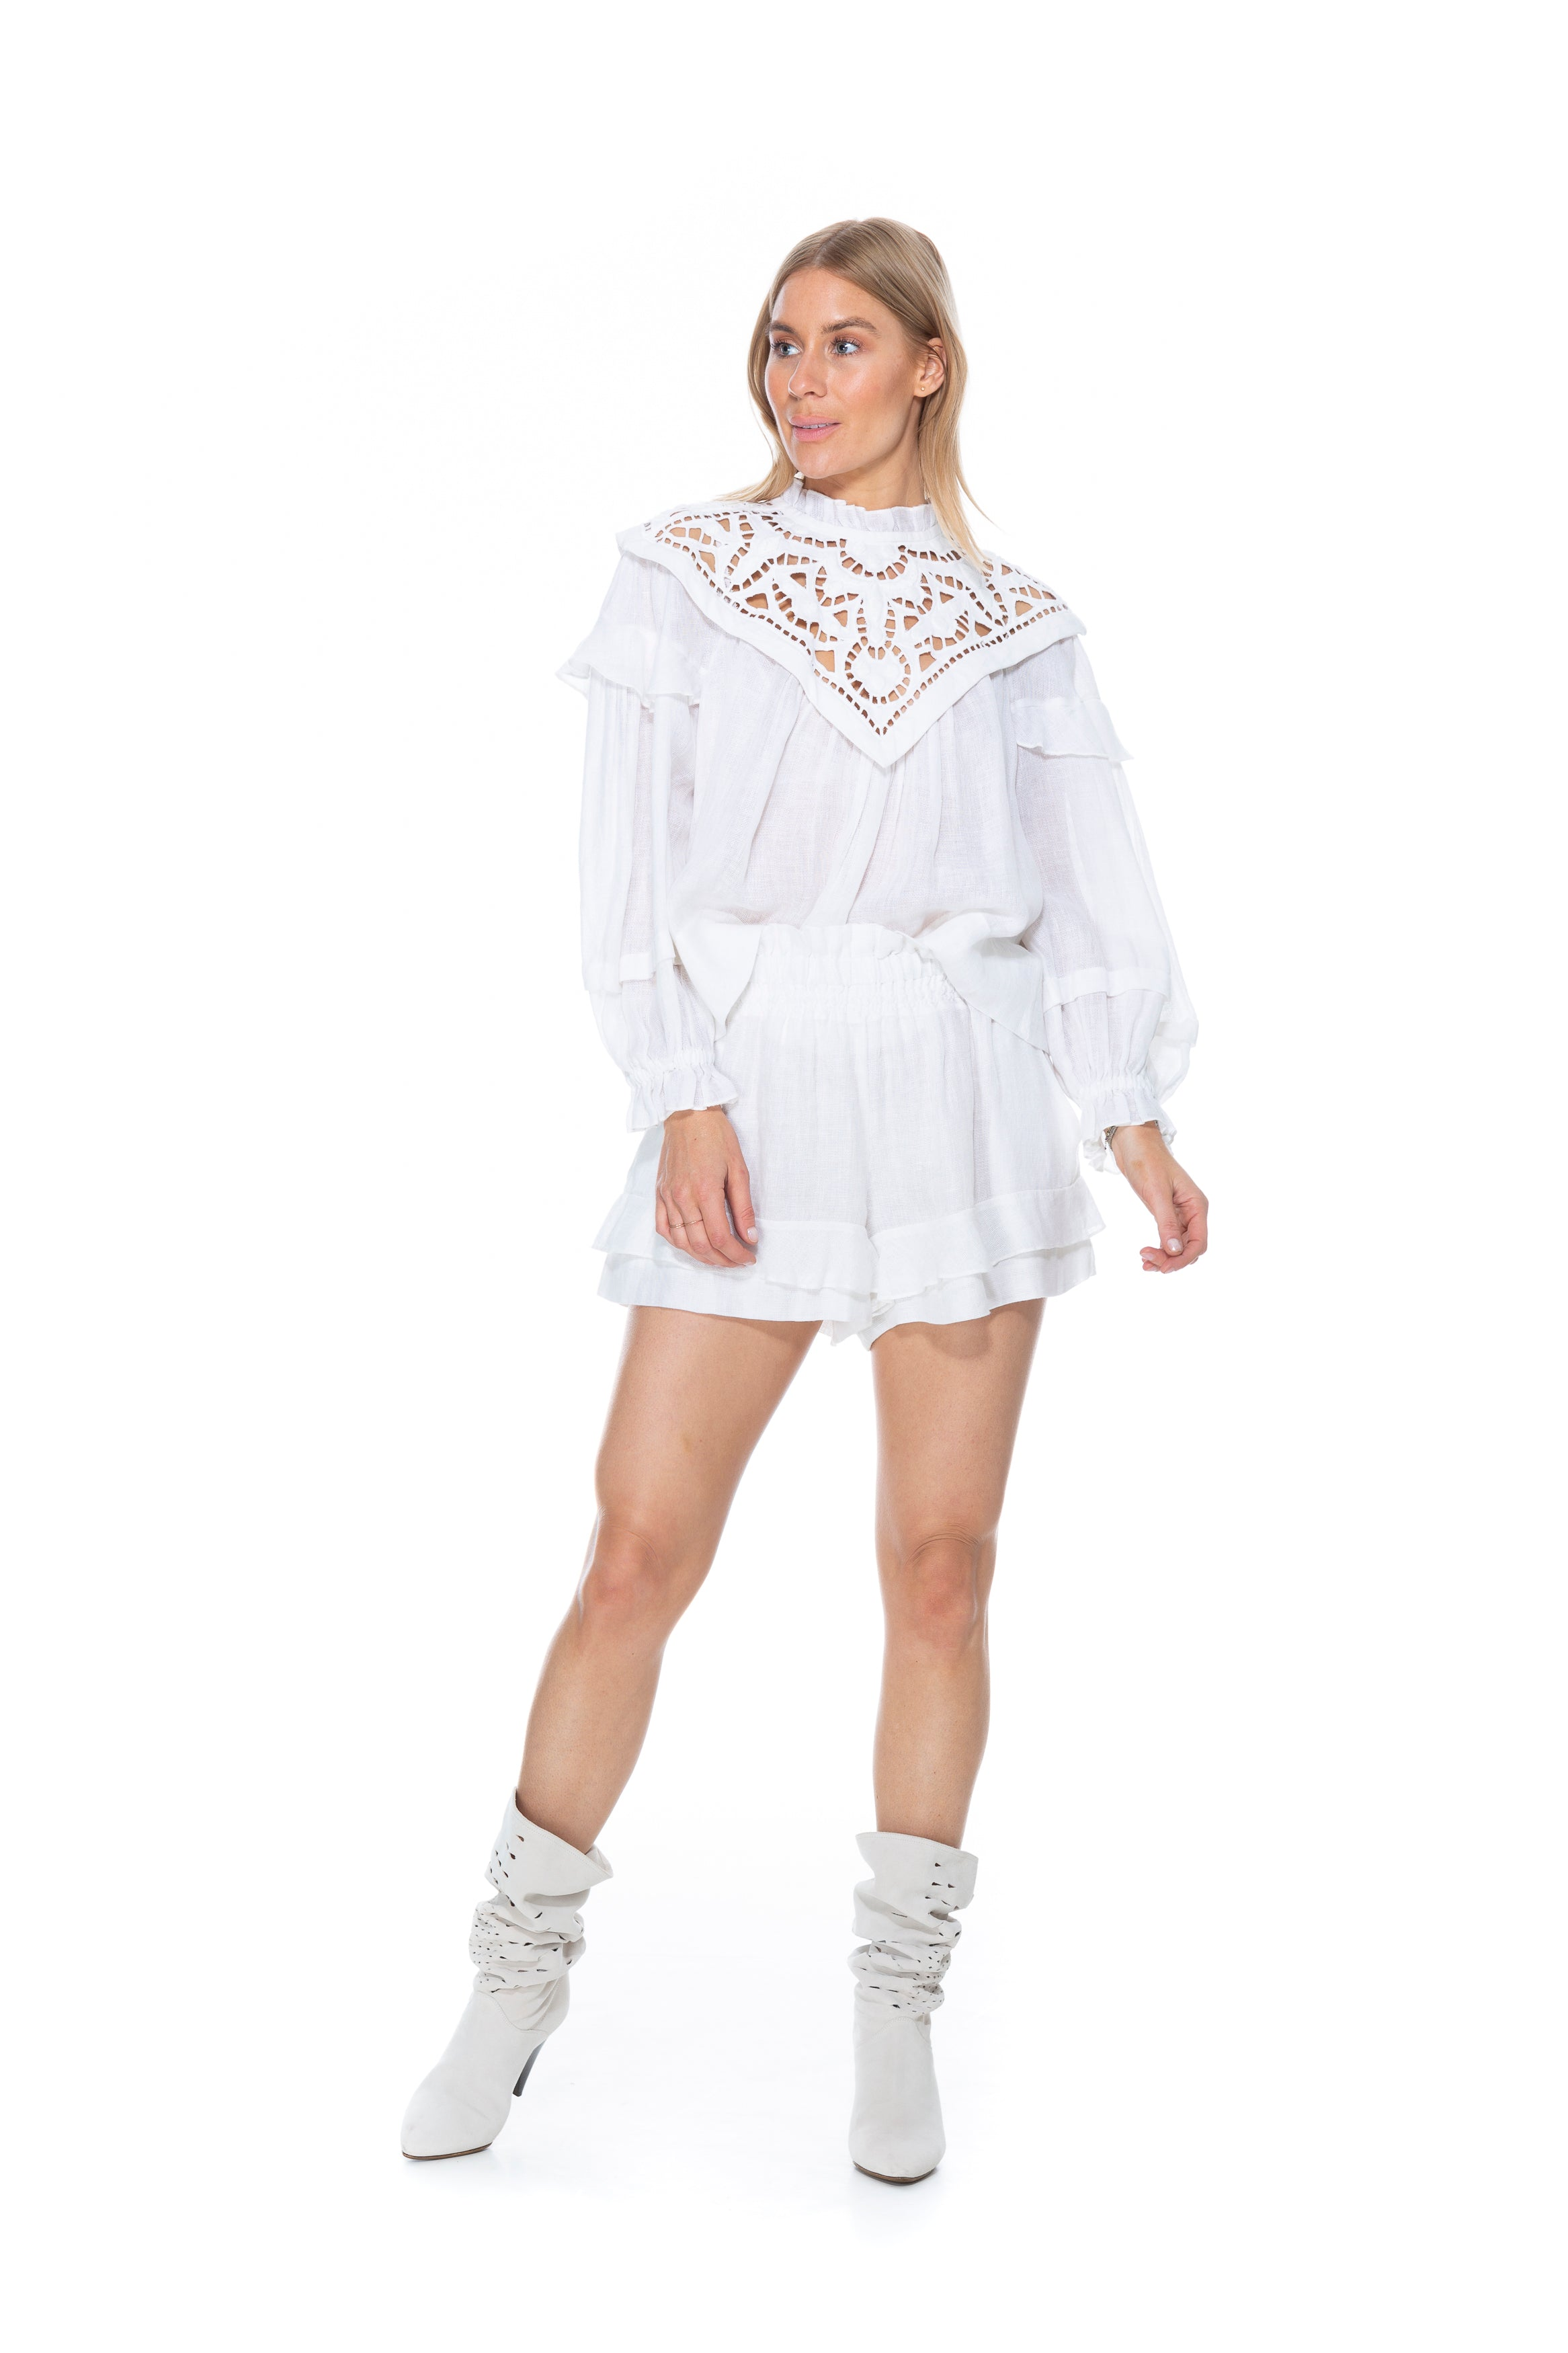 GEOFFREY TOP WHITE